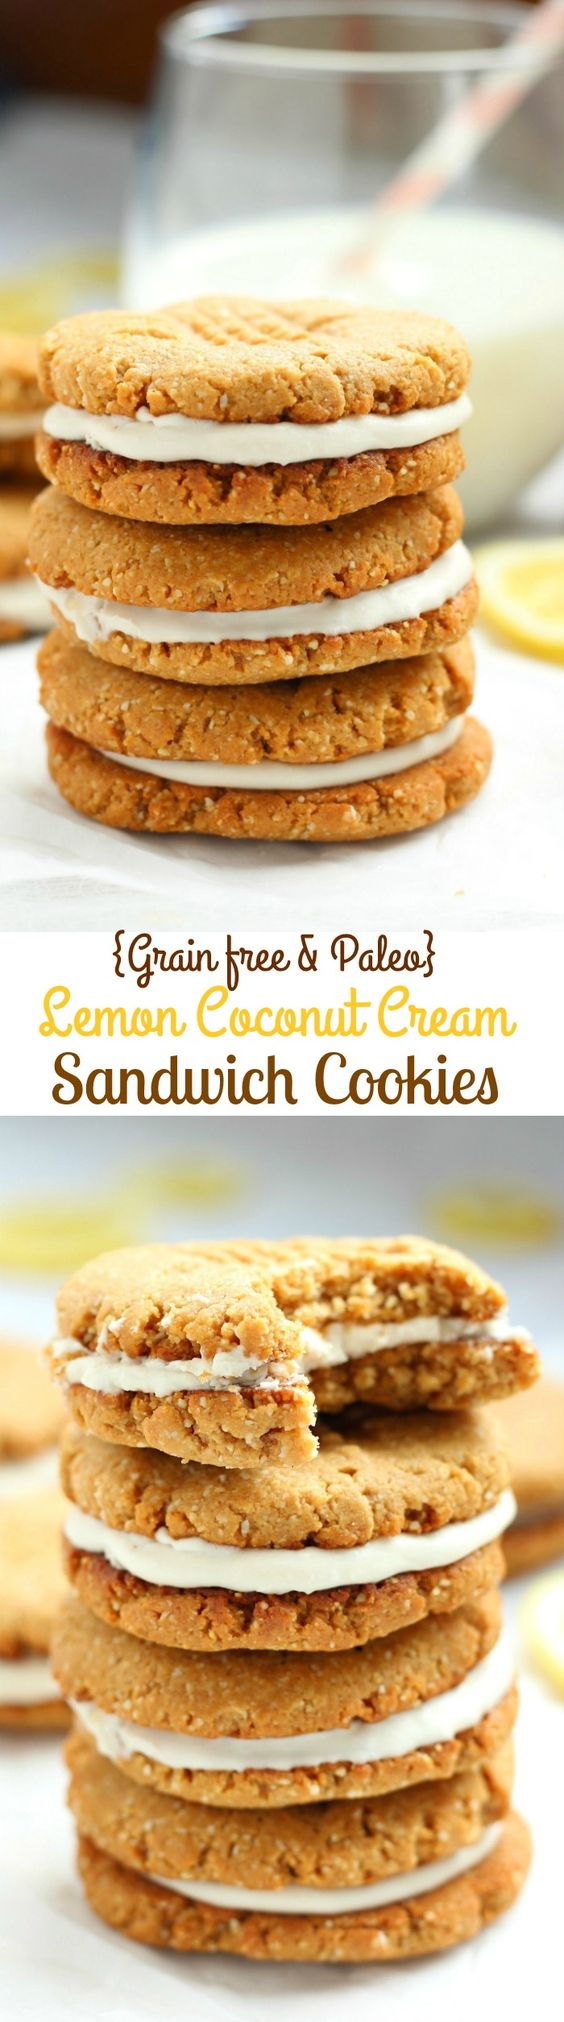 Lemon coconut, Sandwich cookies and Coconut cream on Pinterest